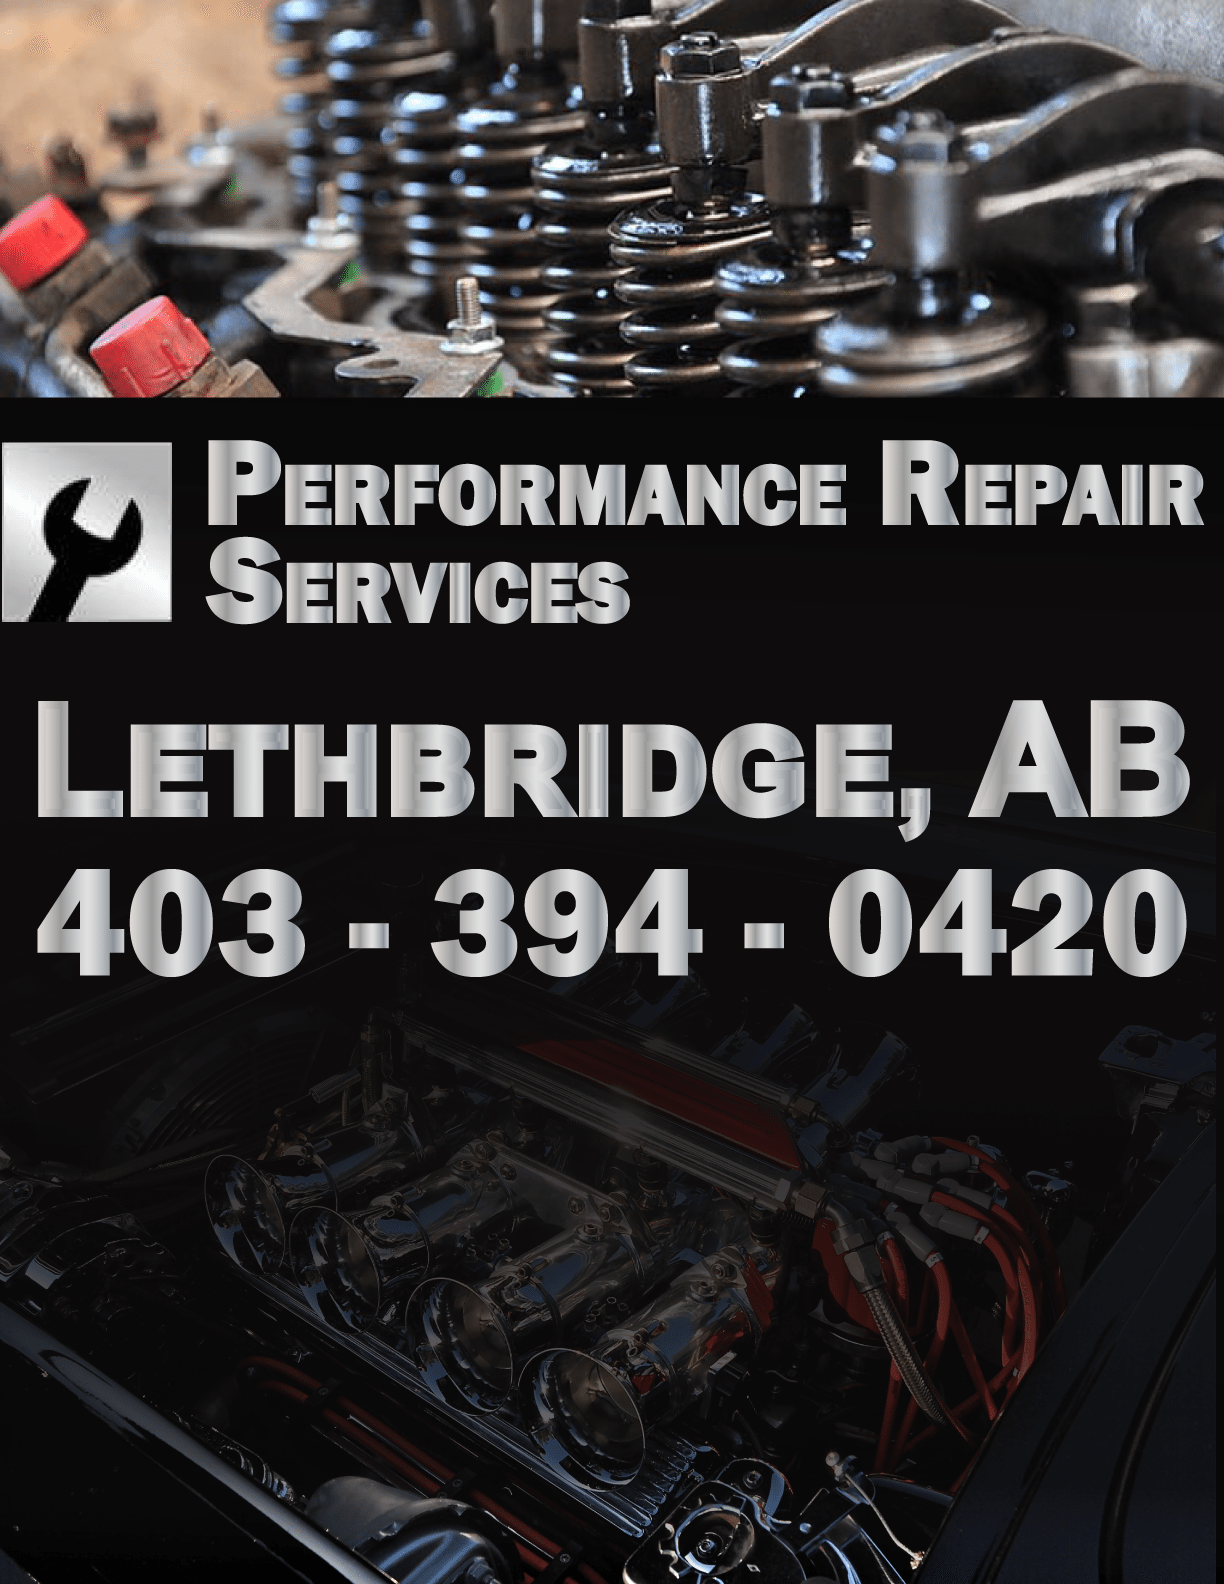 Performance Repair Services